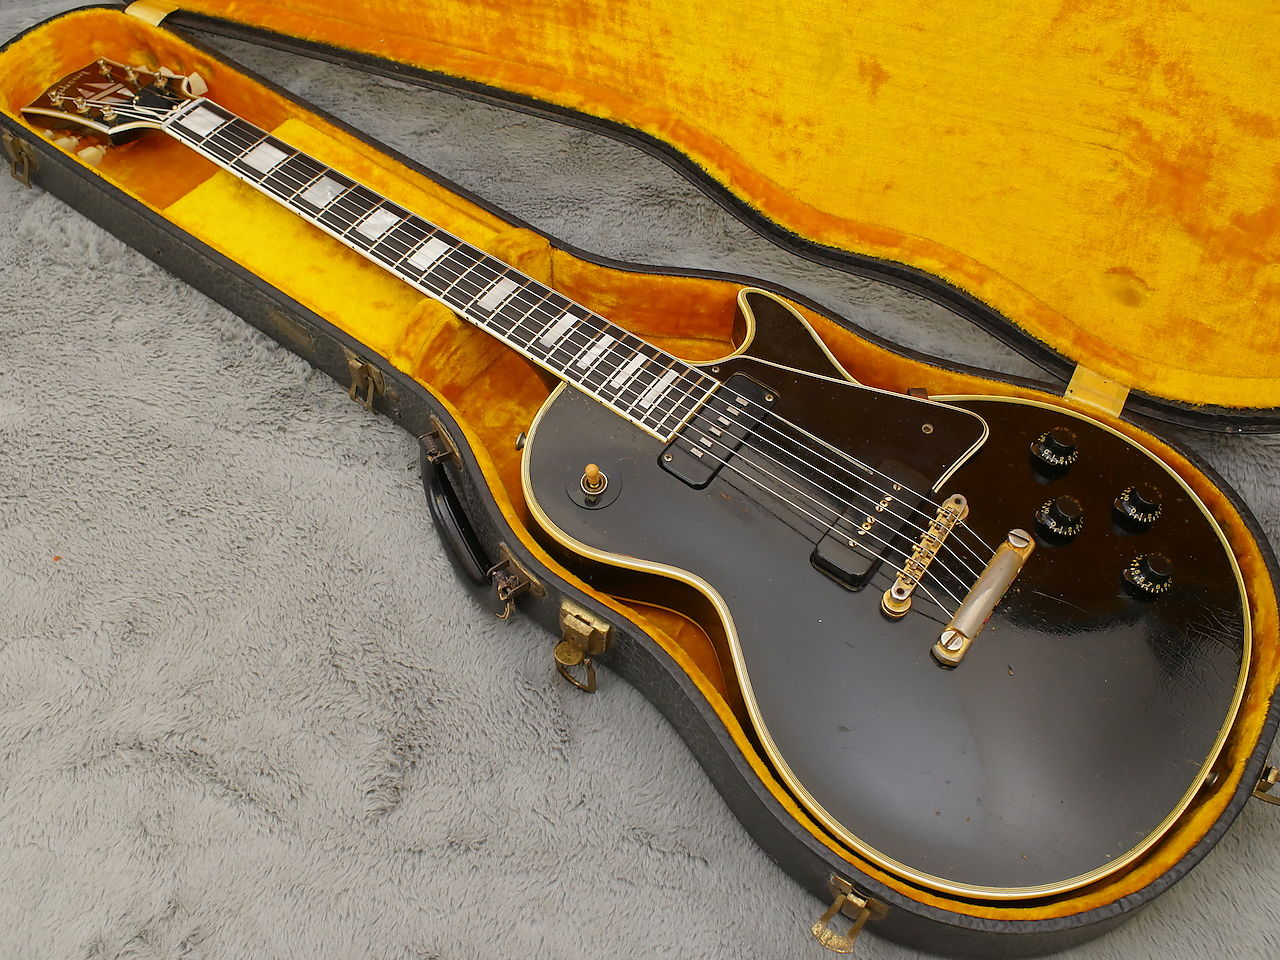 1955 GIBSON LES PAUL CUSTOM